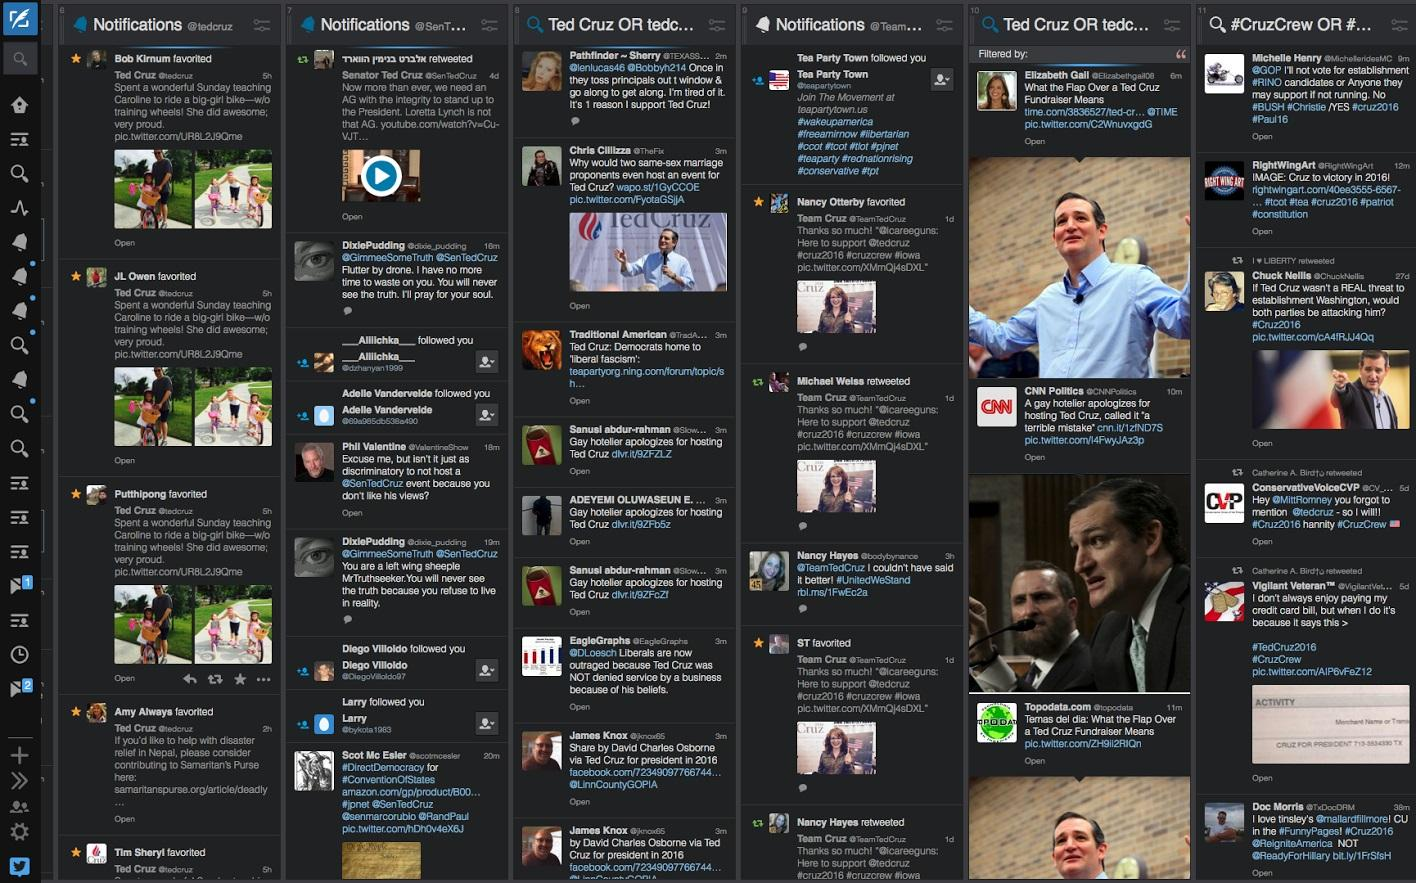 ted cruz tweetdeck